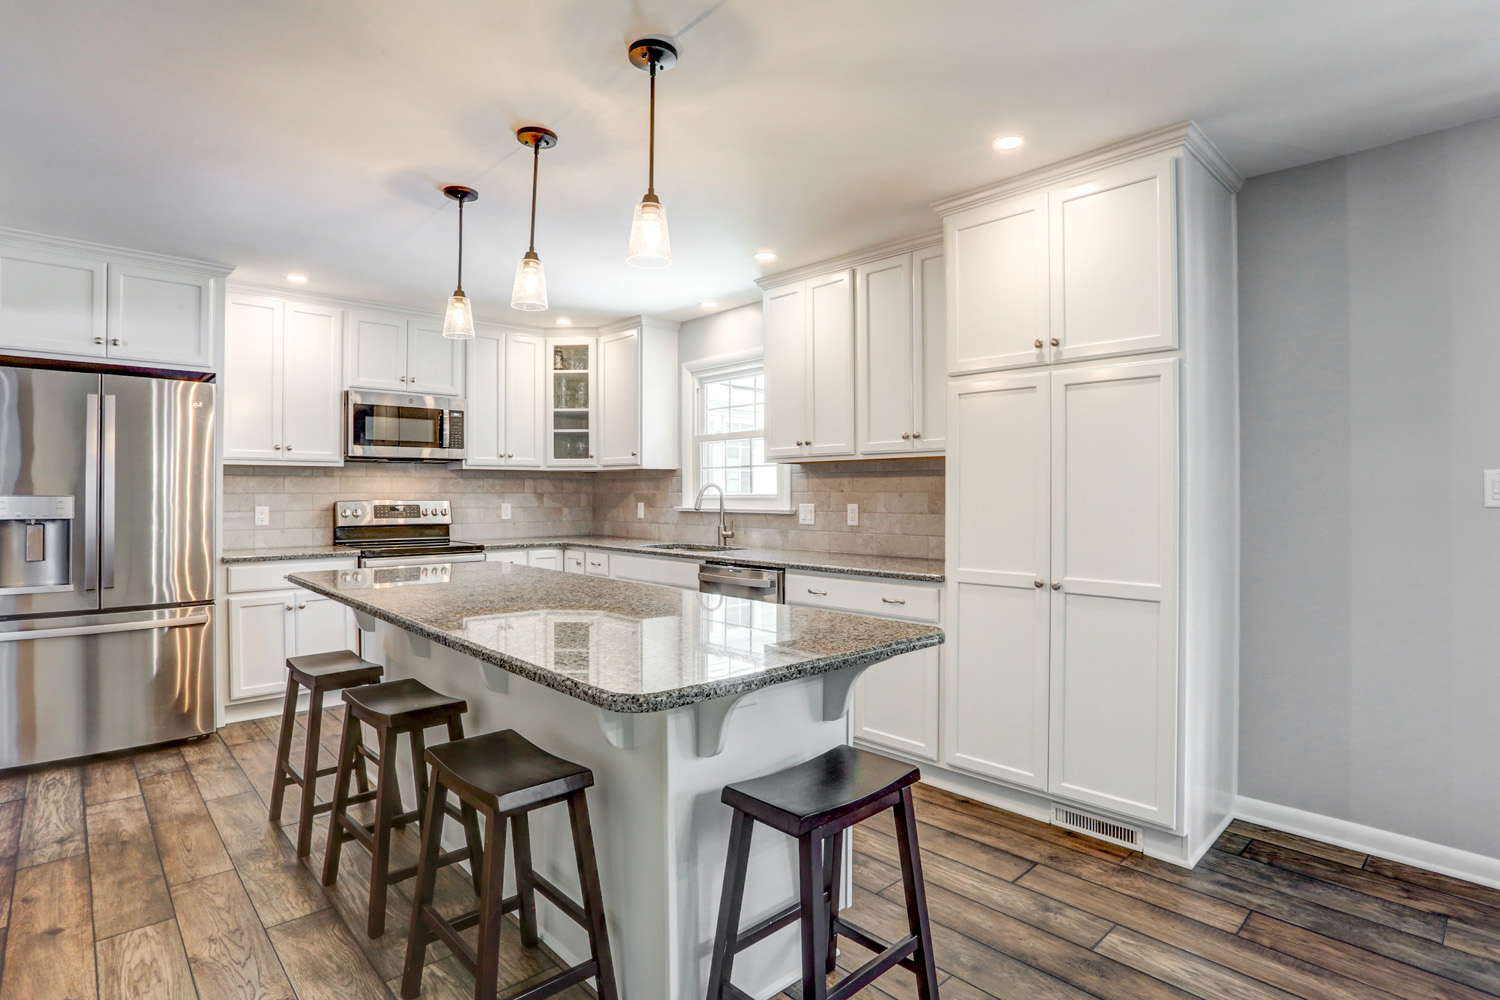 Lititz kitchen remodel with large island and pendant lights